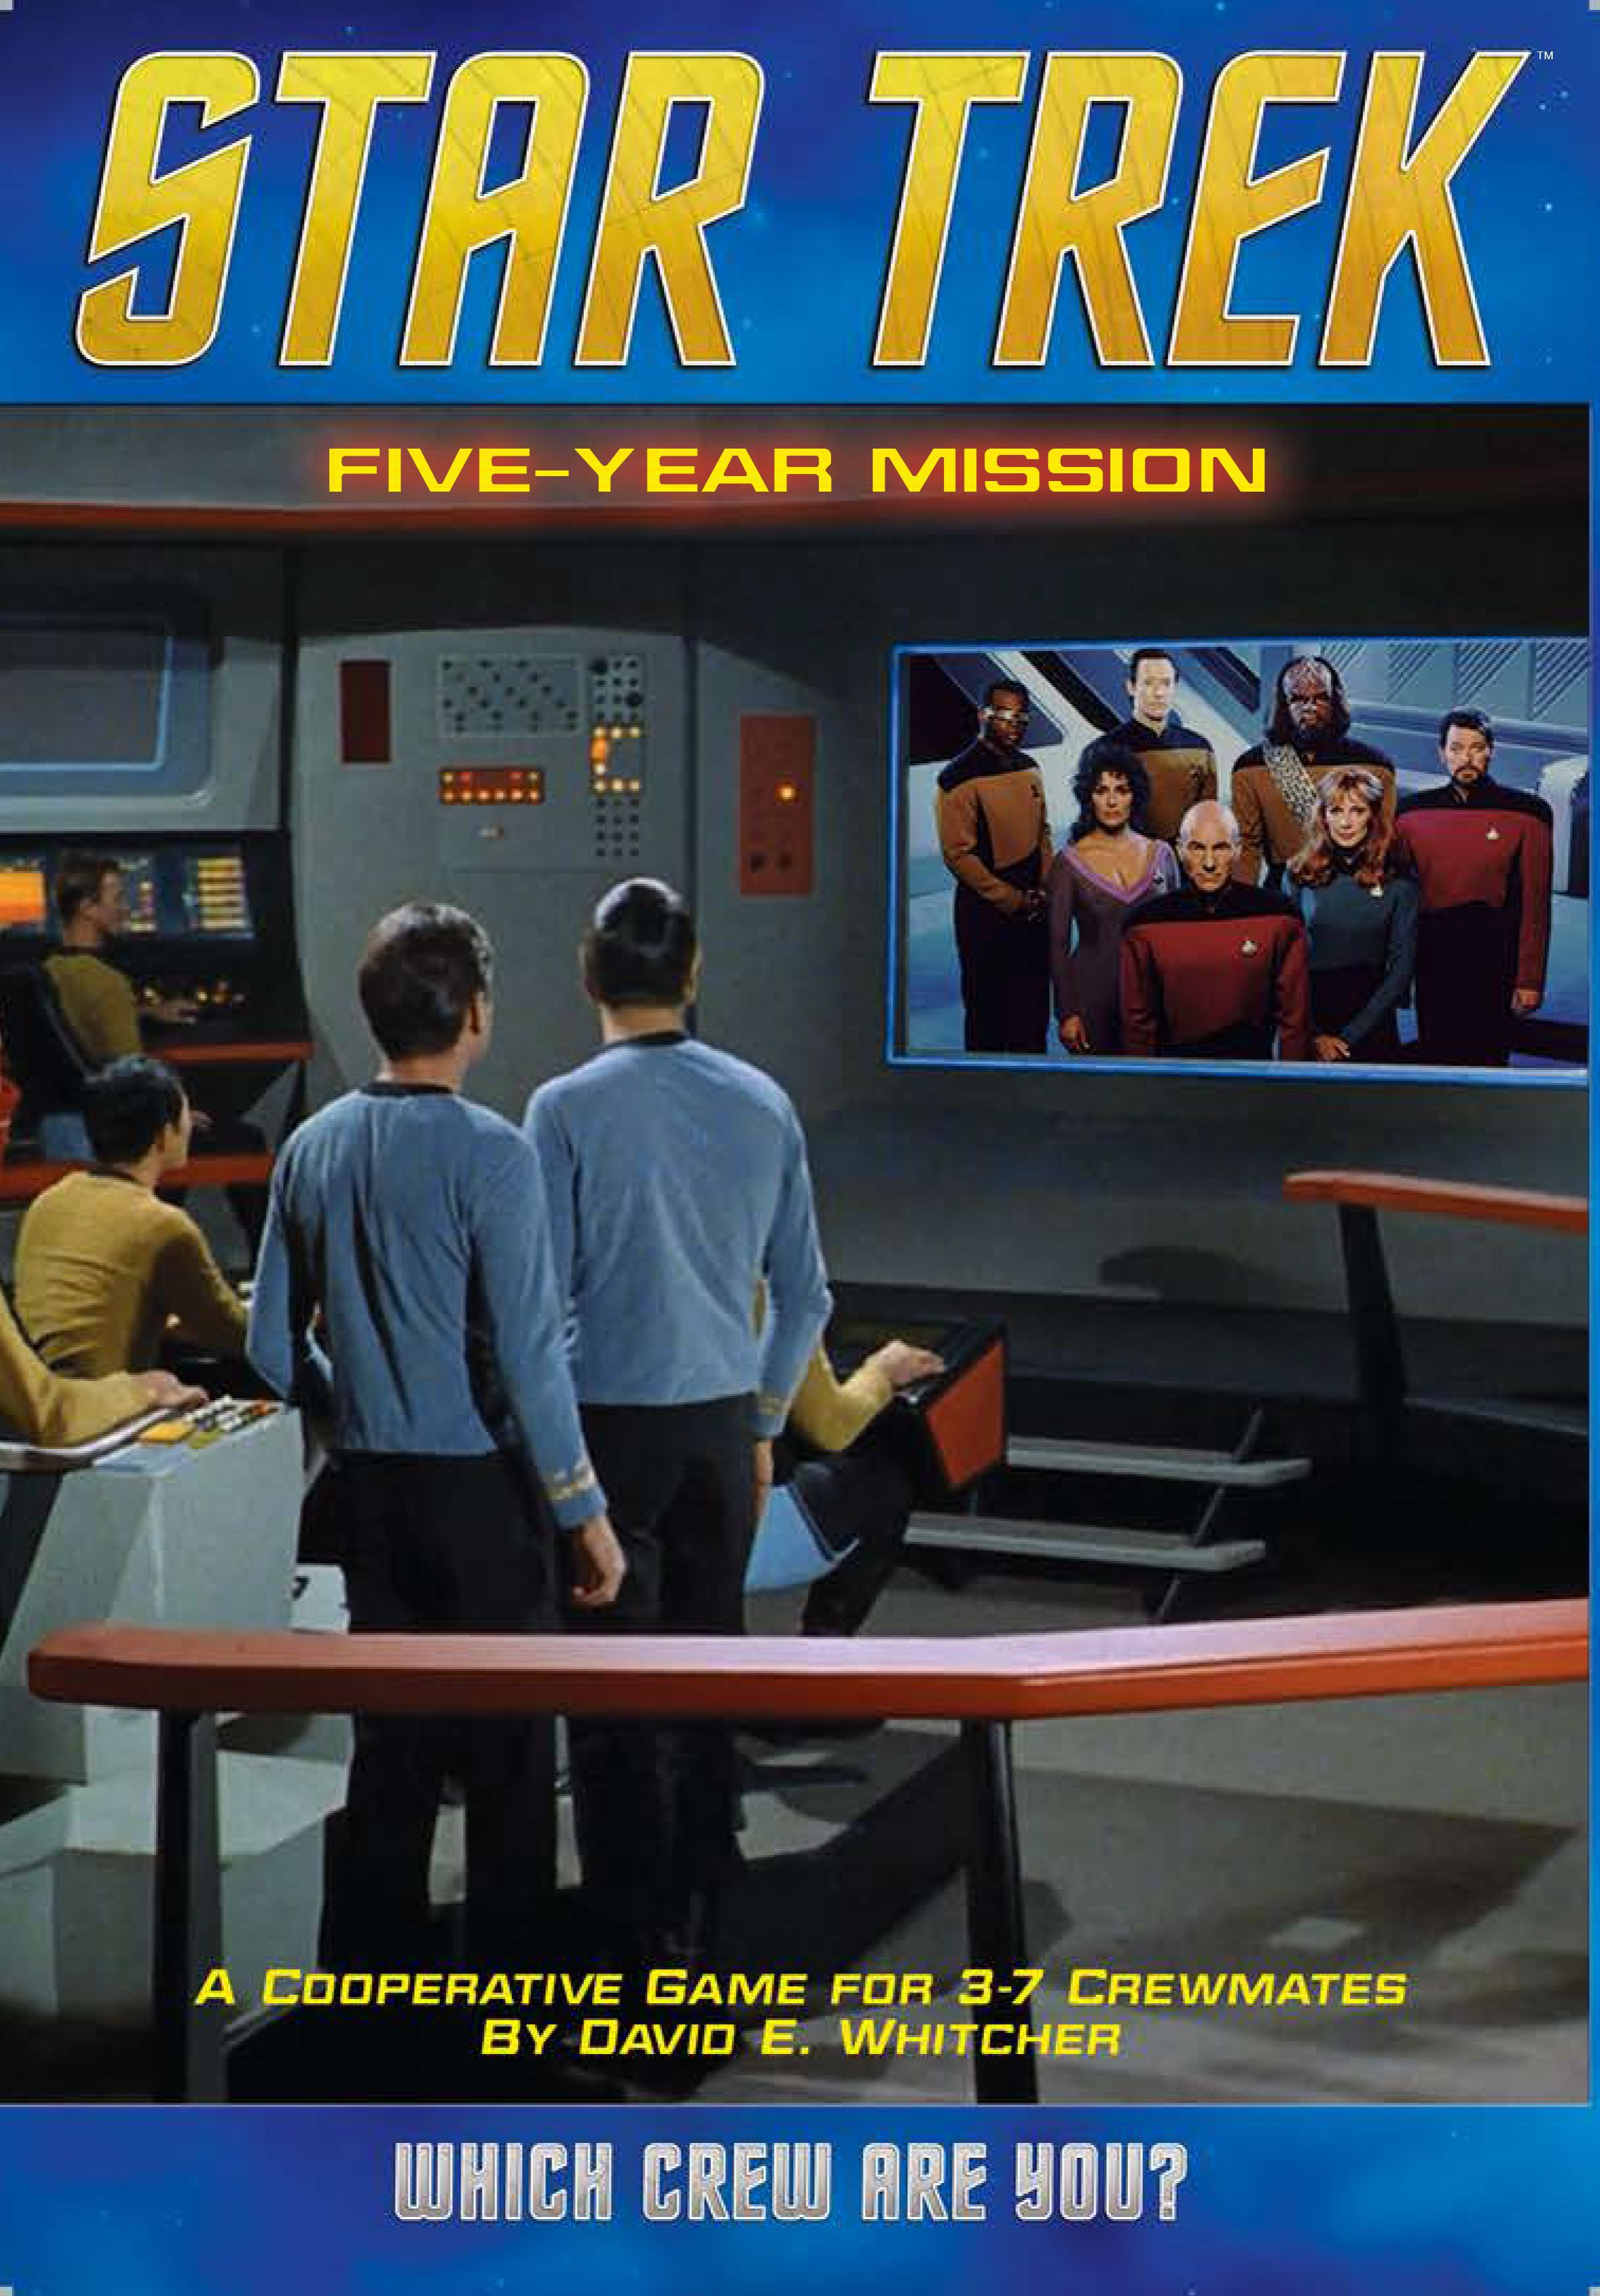 Star Trek: Five-Year Mission